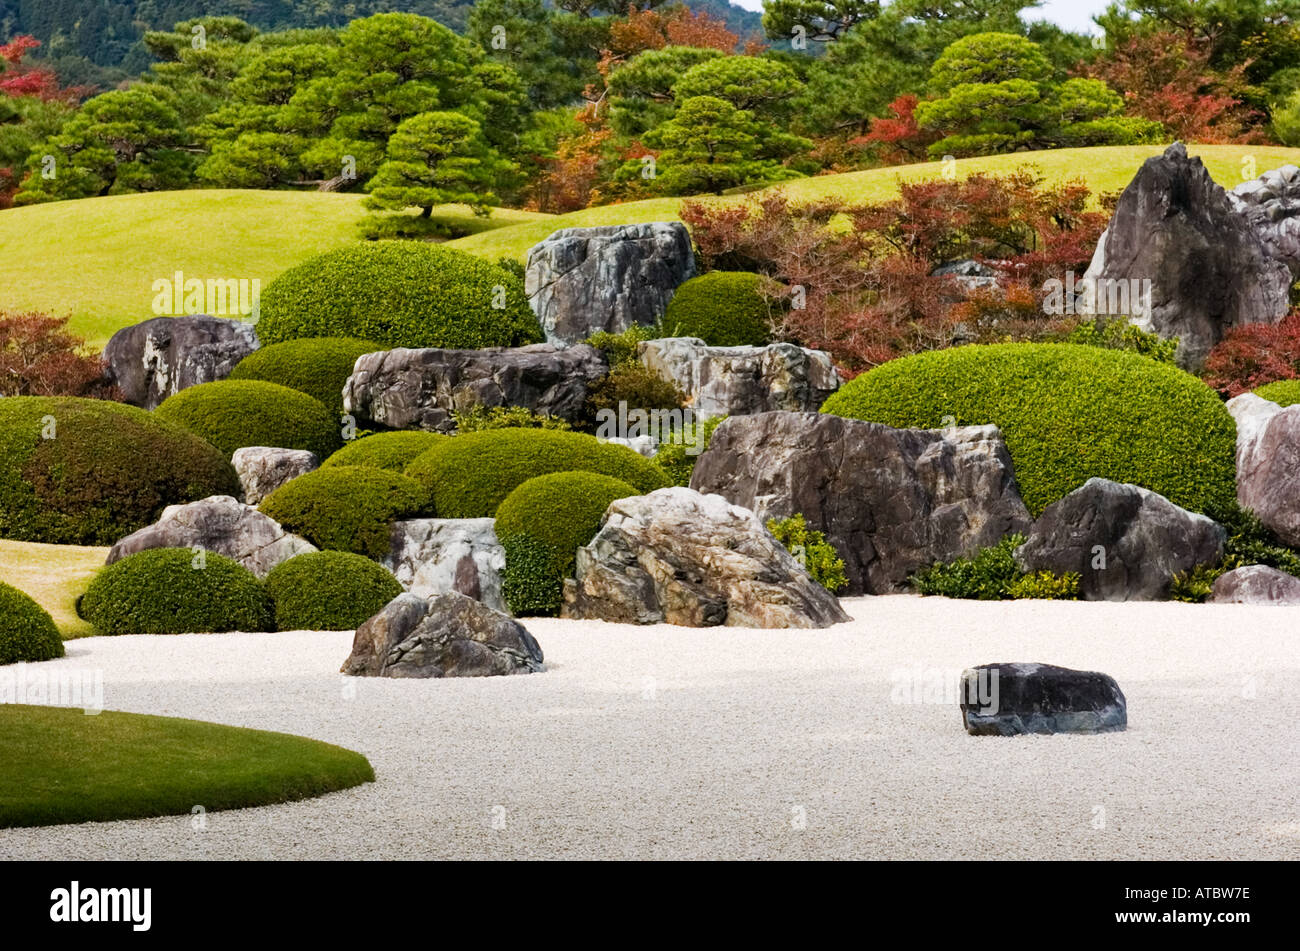 detail of dry landscape garden at famous adachi museum of art in stock photo royalty free image. Black Bedroom Furniture Sets. Home Design Ideas